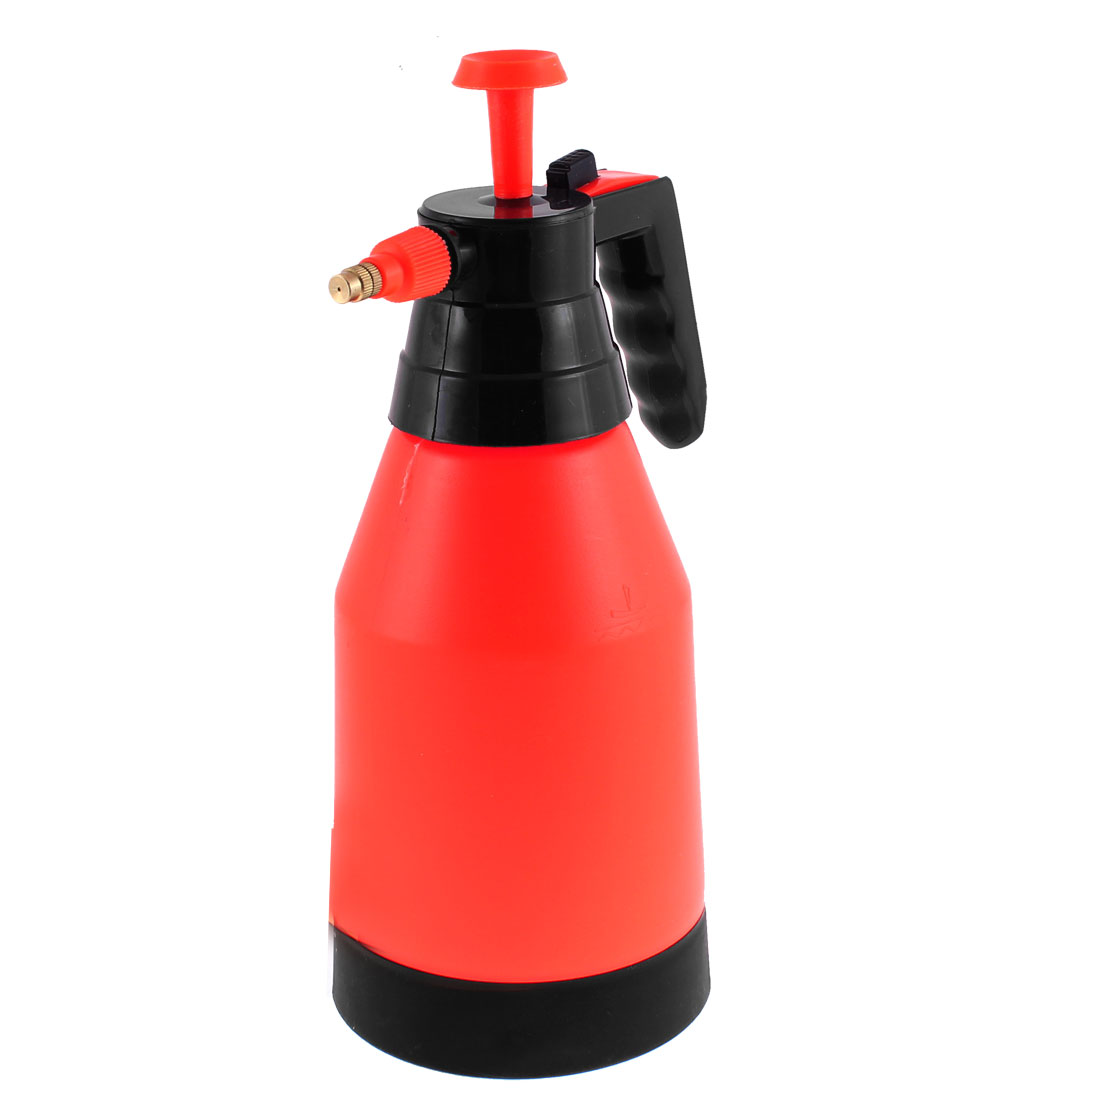 Auto Car Cleaning Tool Black Plastic Handle Orange Body Water Sprayer Bottle 1.5L